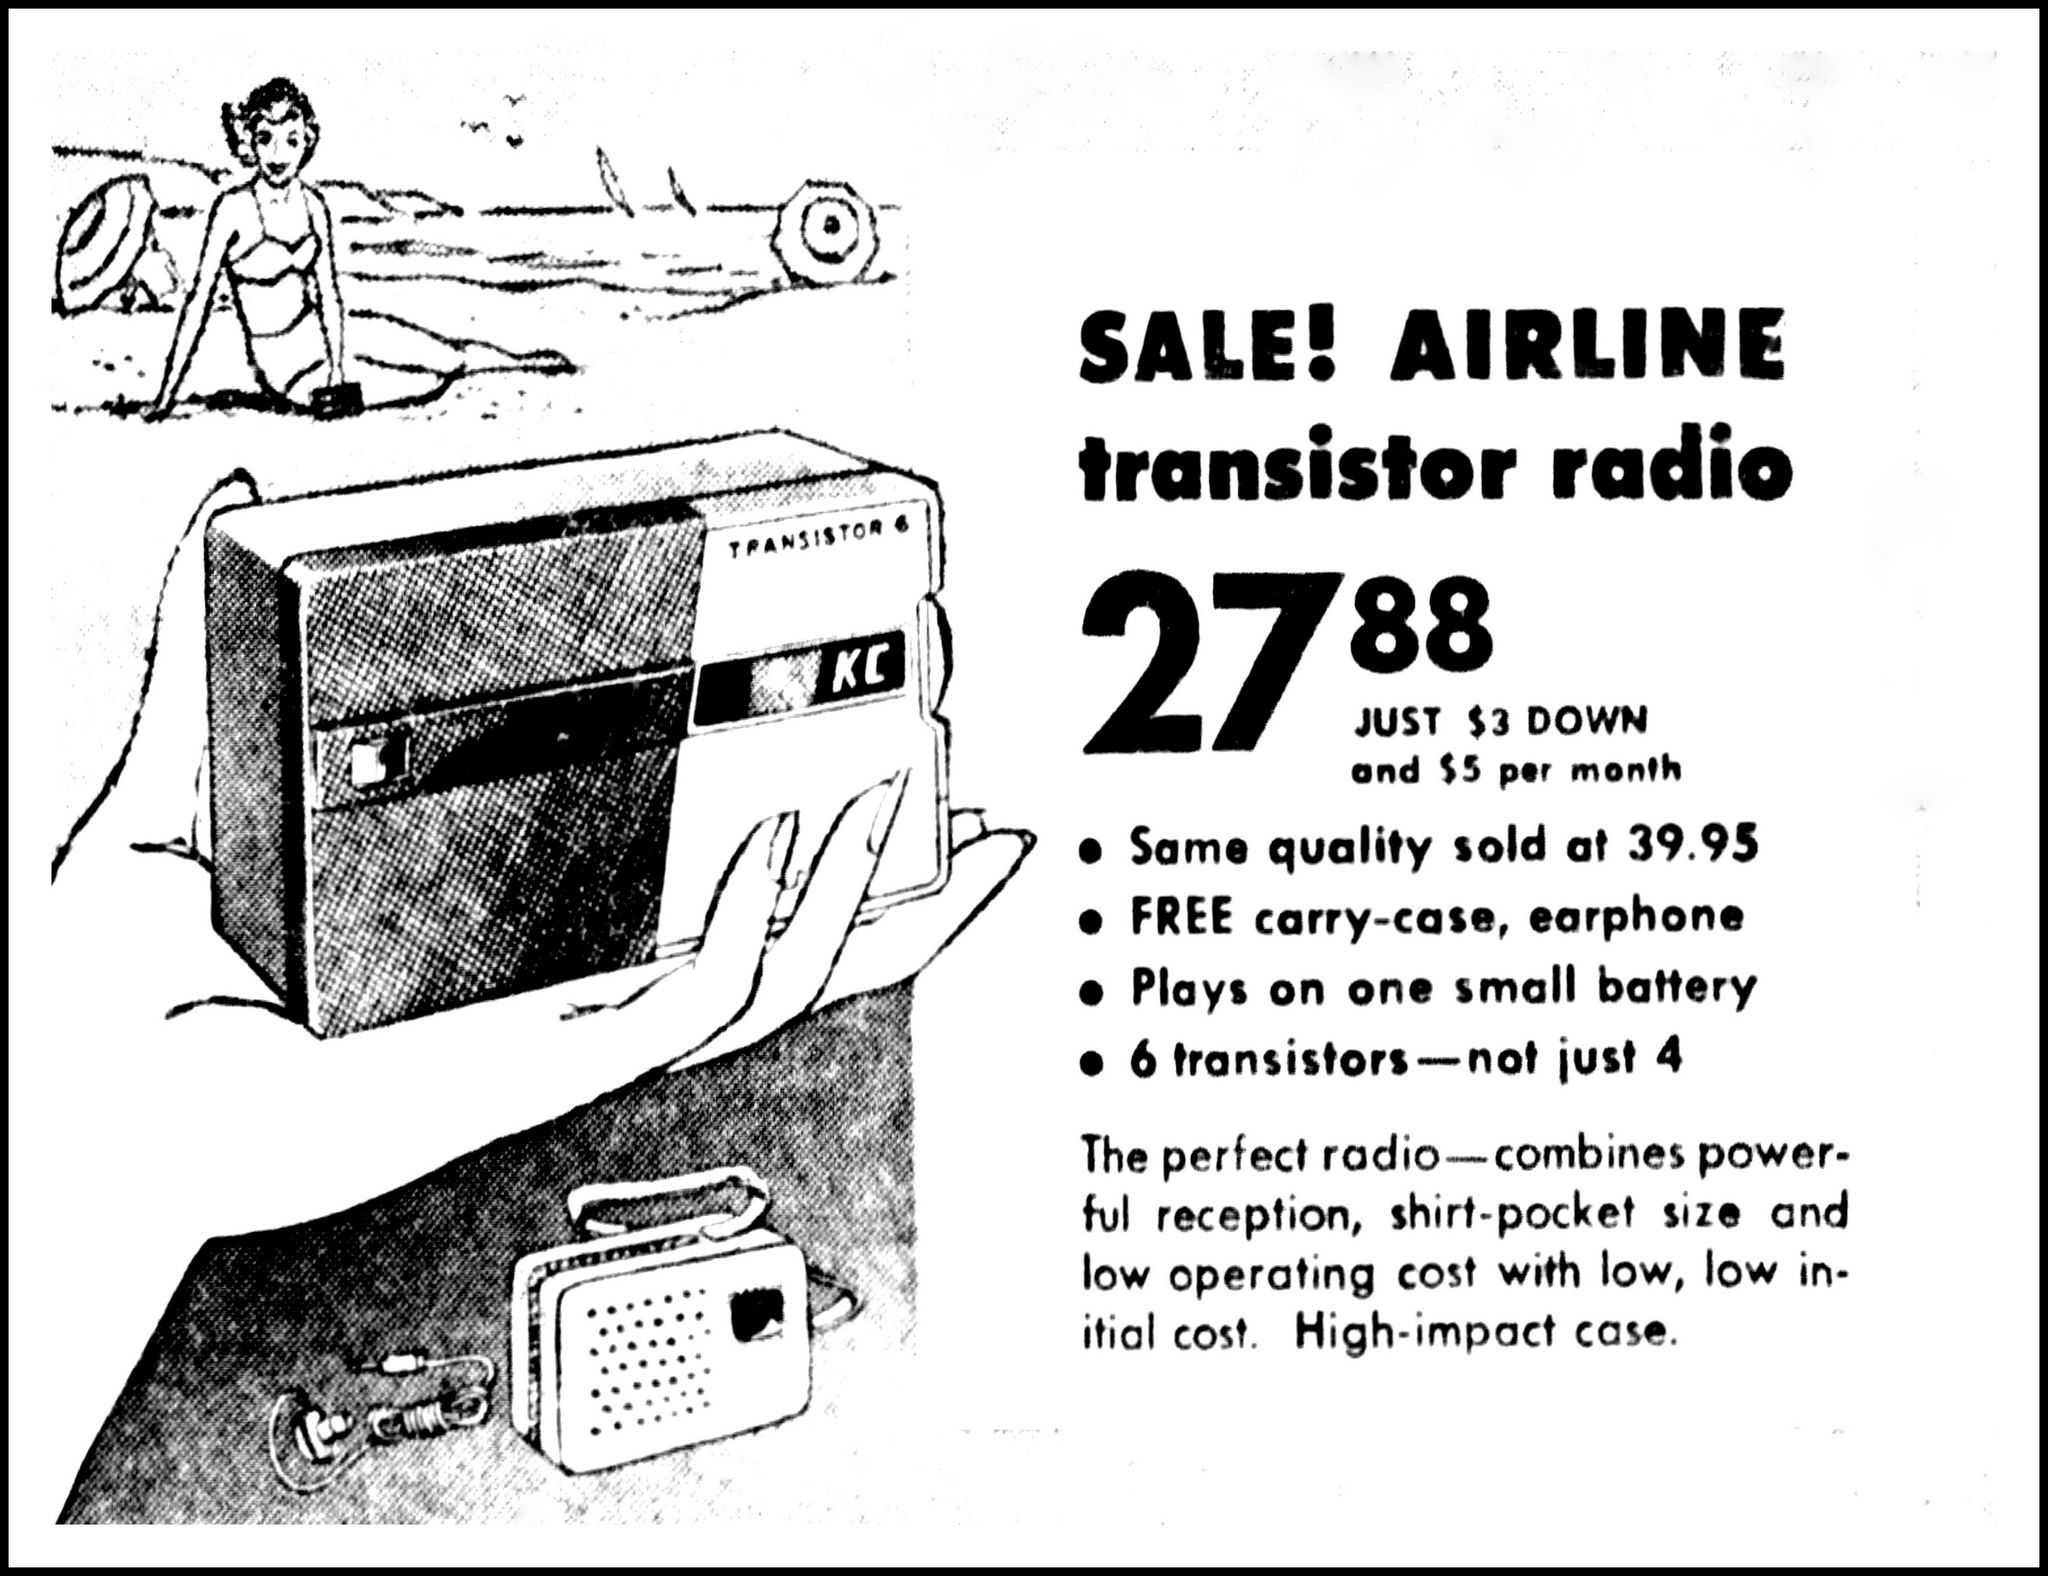 Vintage Advertising For The Airline Model Gen 1130a Transistor Radio One Https Flickr P 24nkhqb